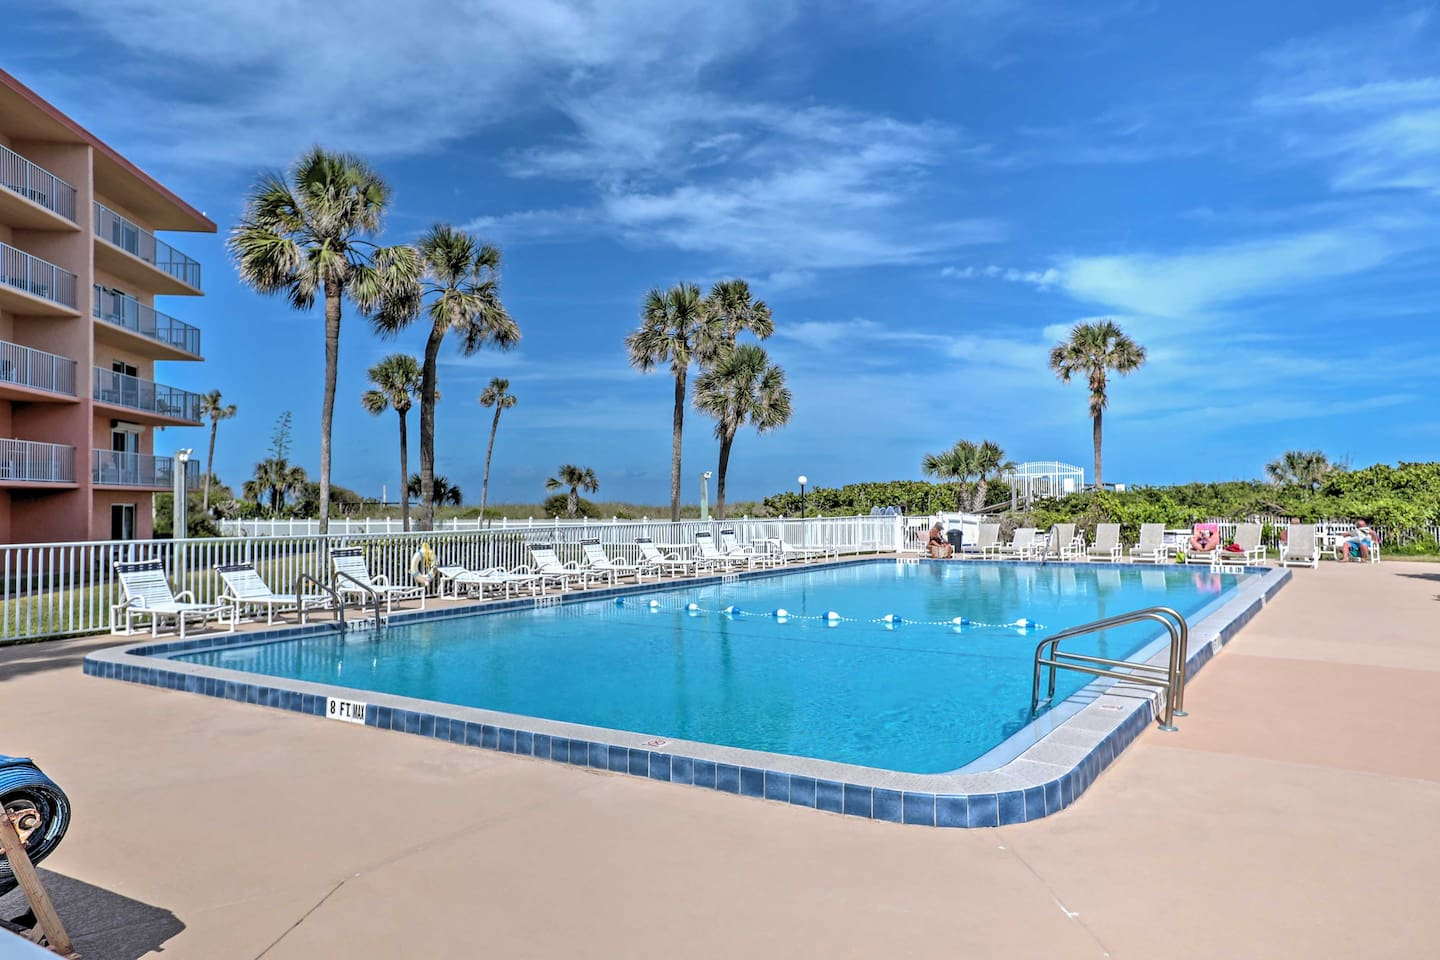 Spend days lounging poolside when you stay at this Cocoa Beach vacation rental.